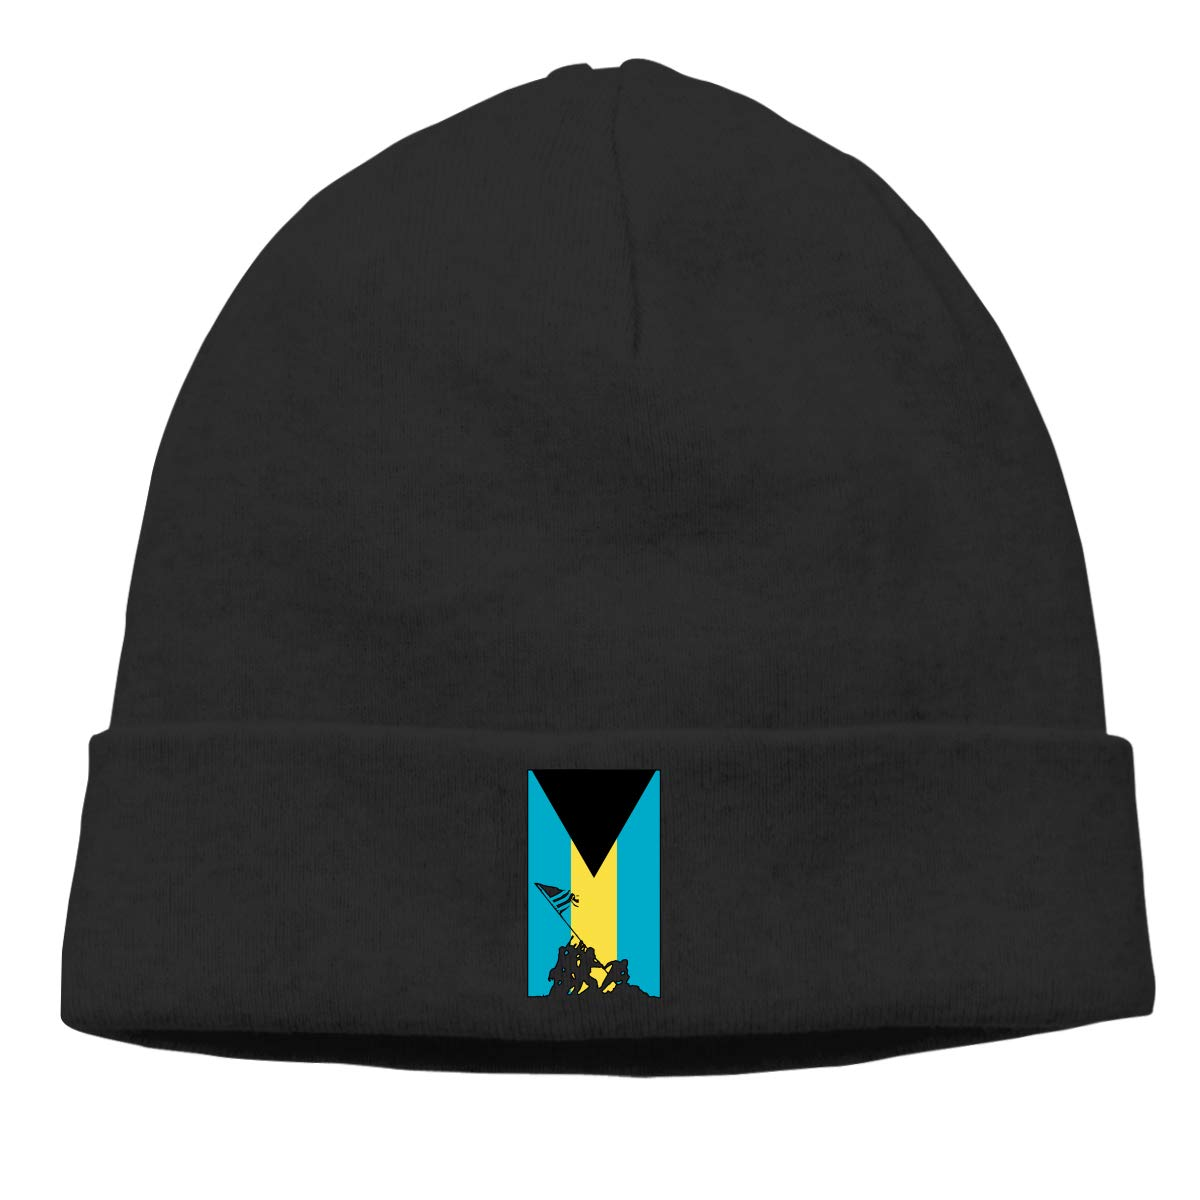 Thin Bahamas Flag Veteran Military Army Men Womens Solid Color Beanie Hat Stretchy /& Soft Winter Cap